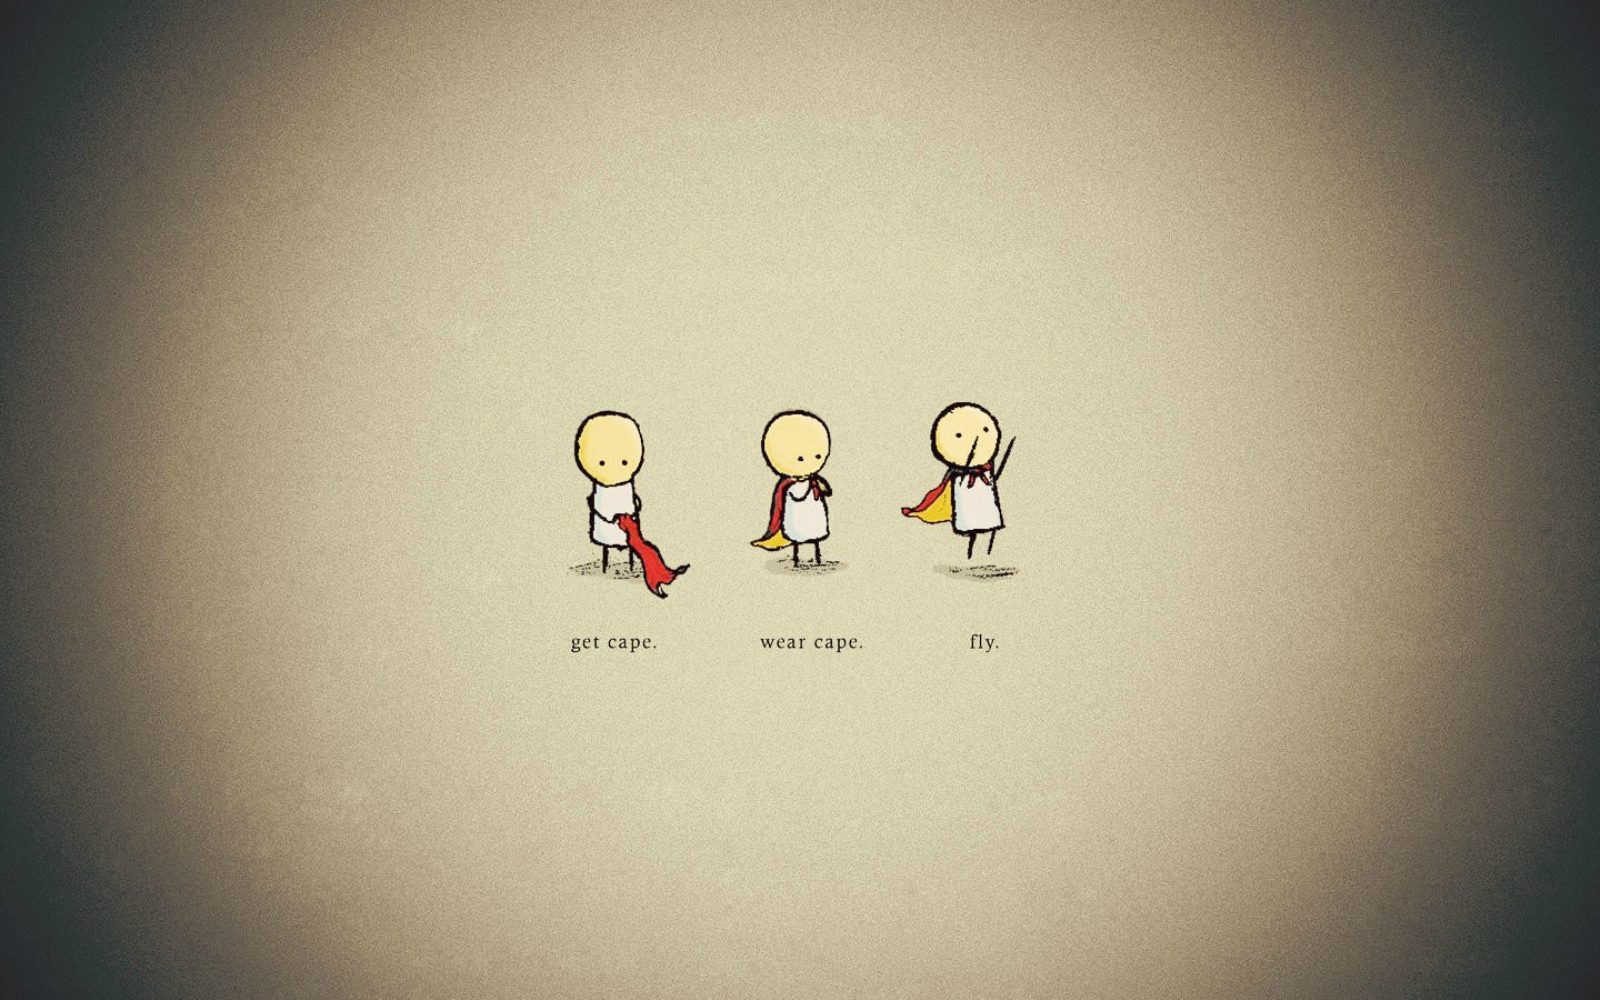 Free Funny Wallpapers Desktop Group (64+)